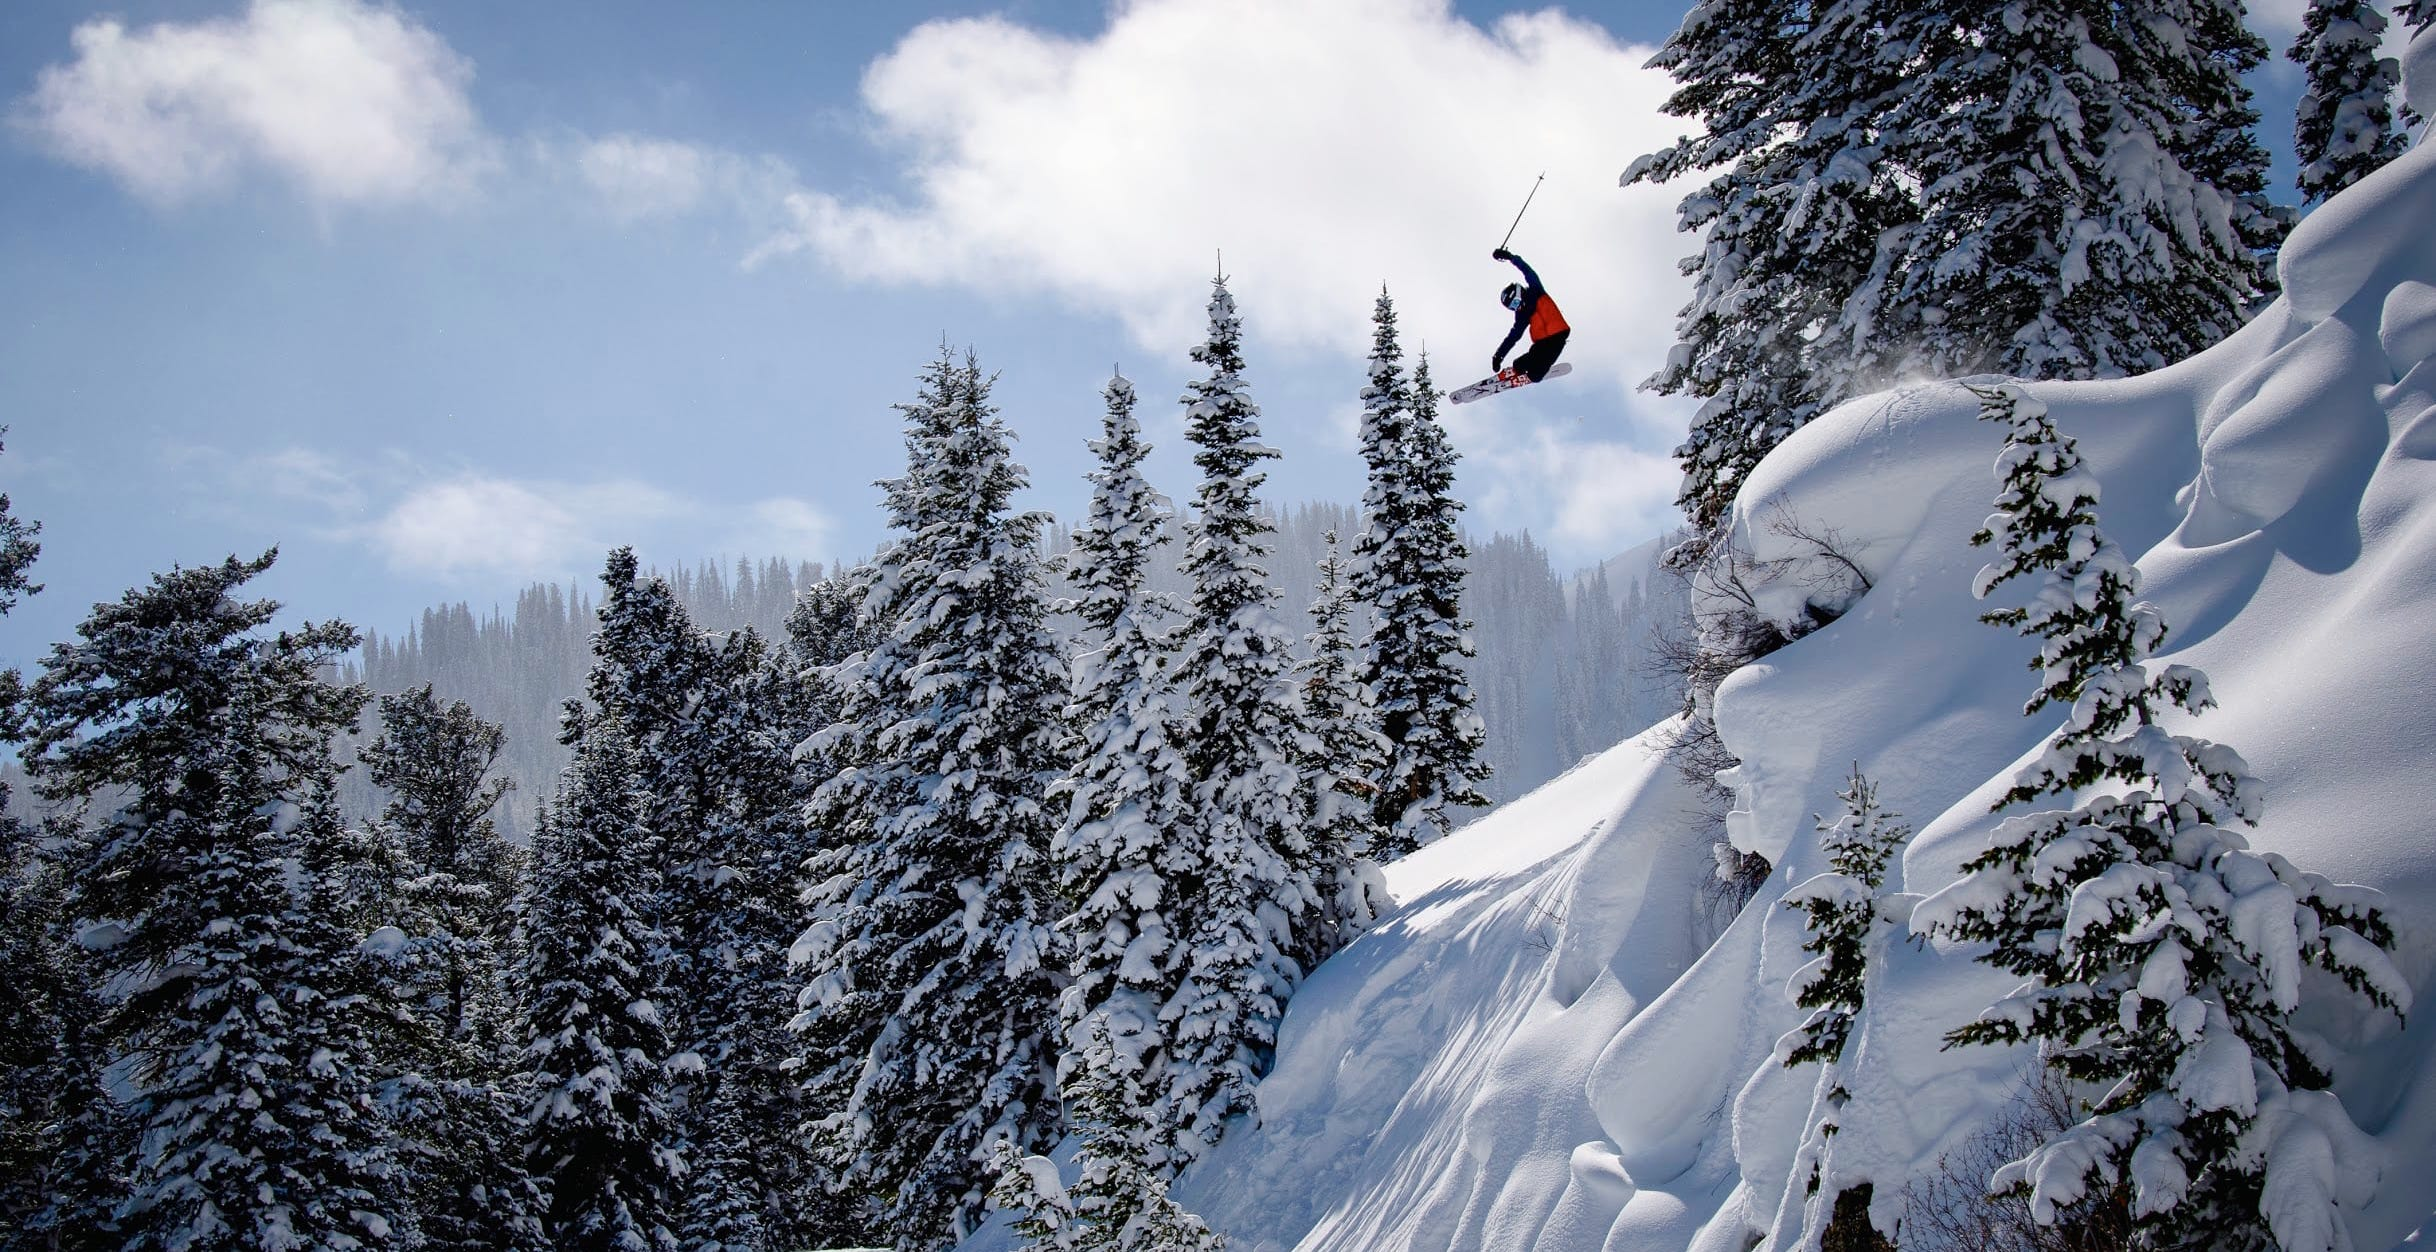 Thursday 05.12.19 – 9pm: Winterland: A Ski and Snowboard Film